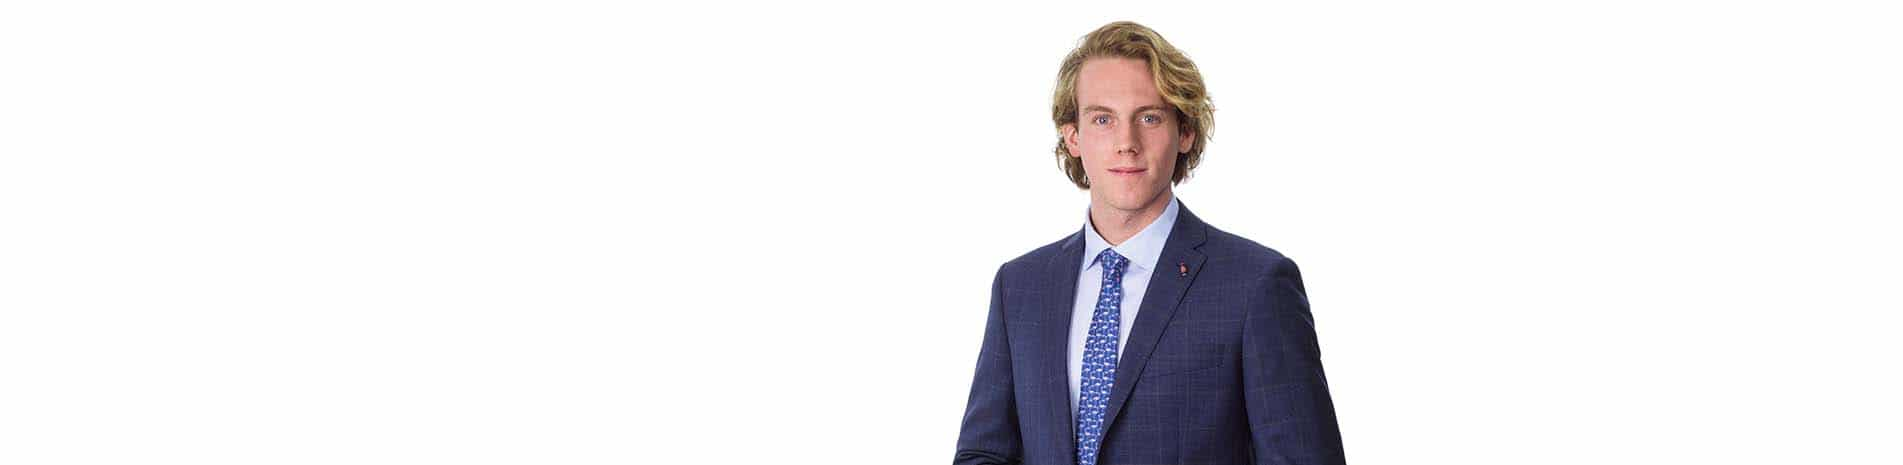 Tom Woodward Traffic Lawyer Melbourne